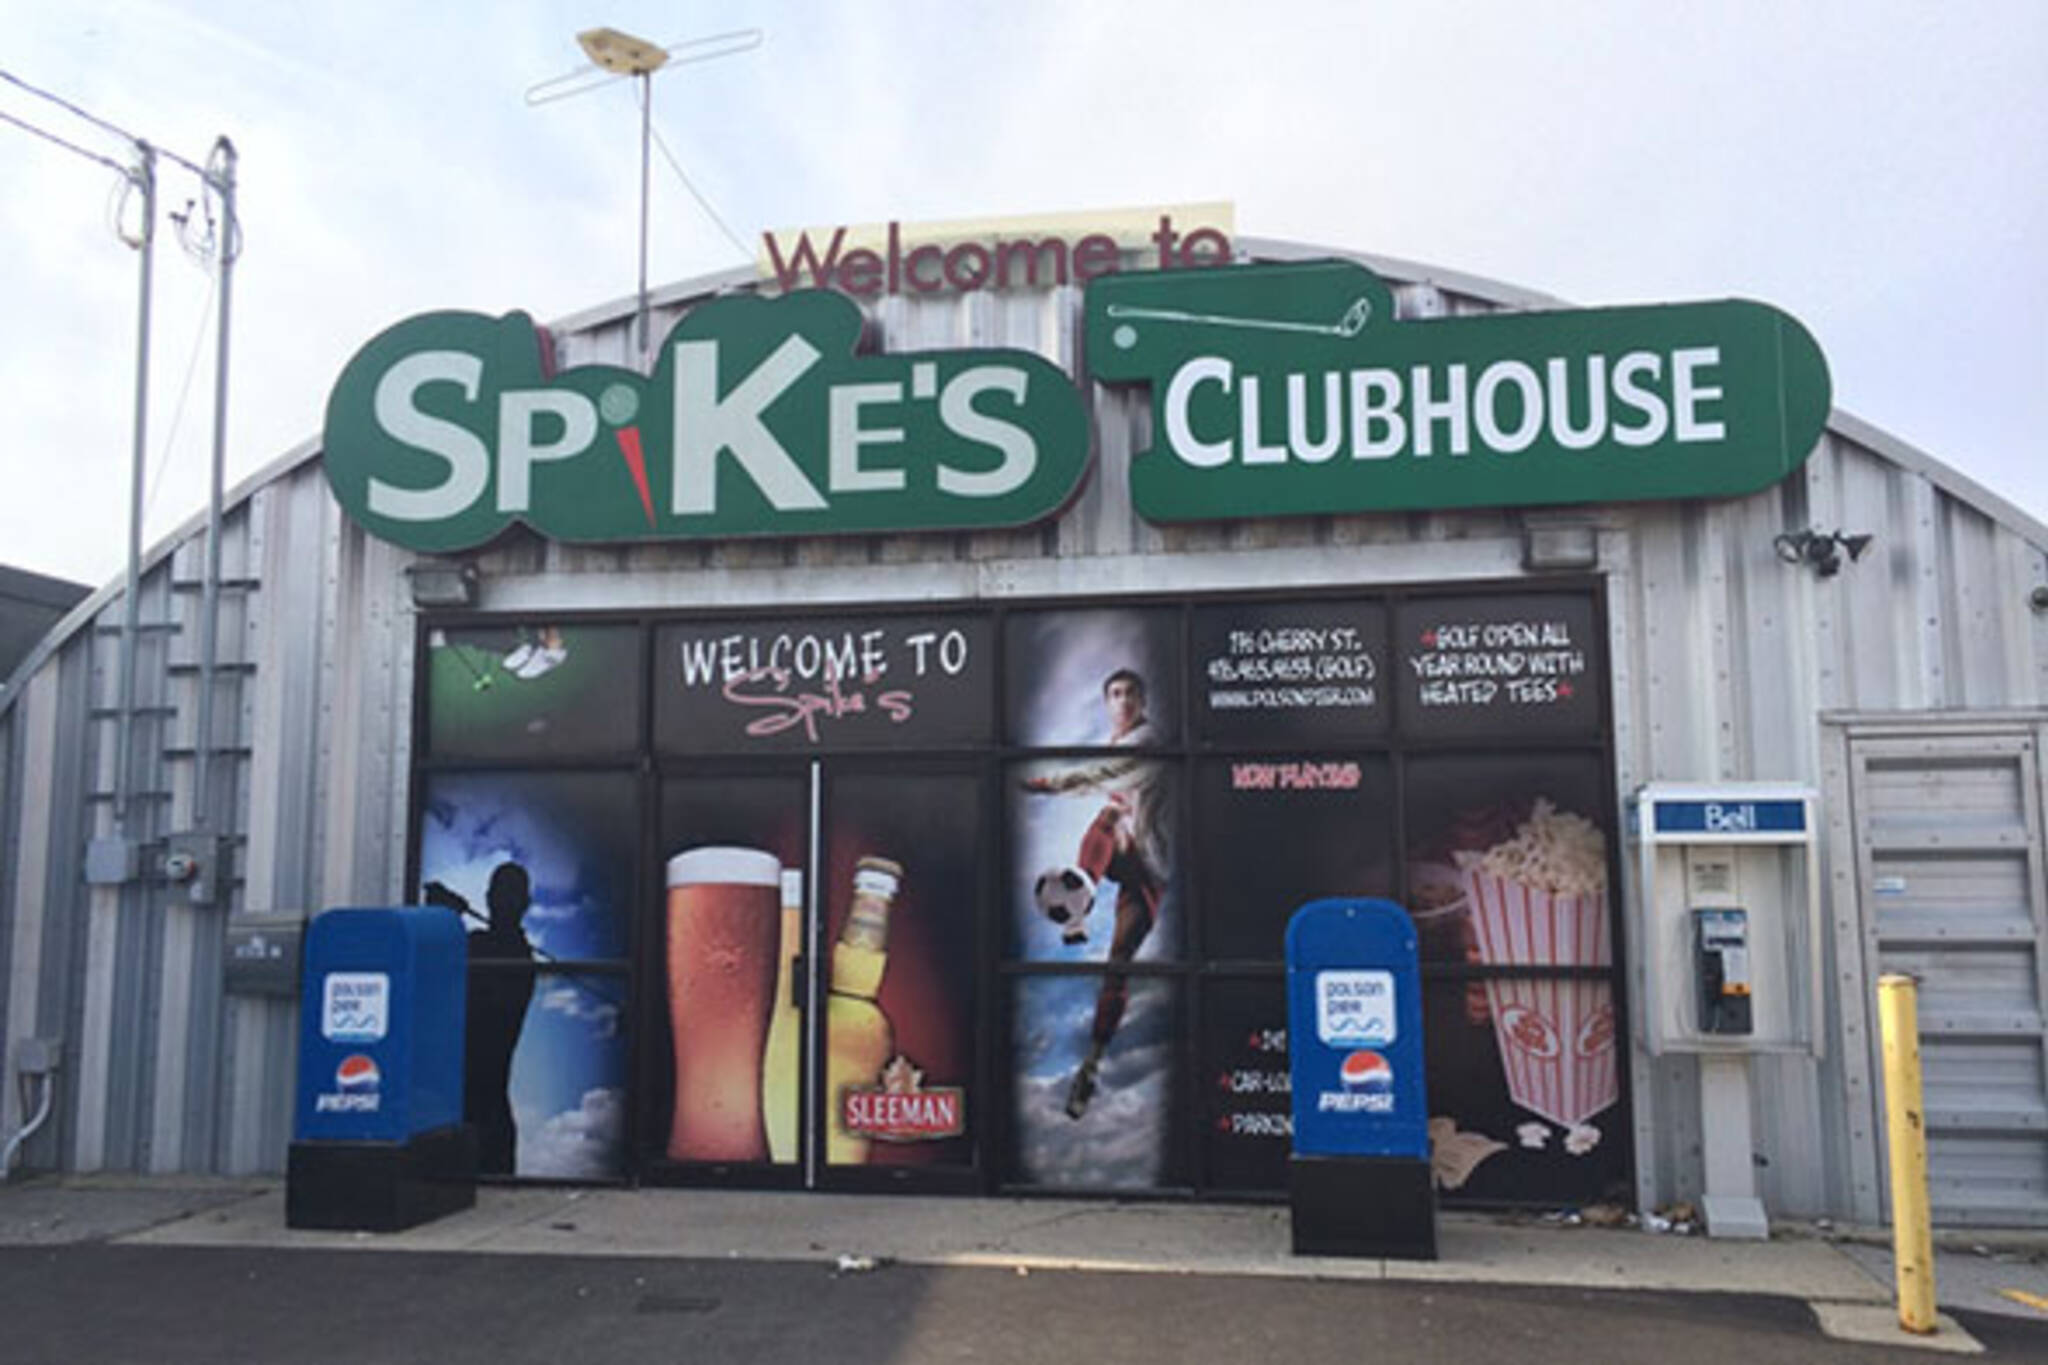 Spike's Clubhouse